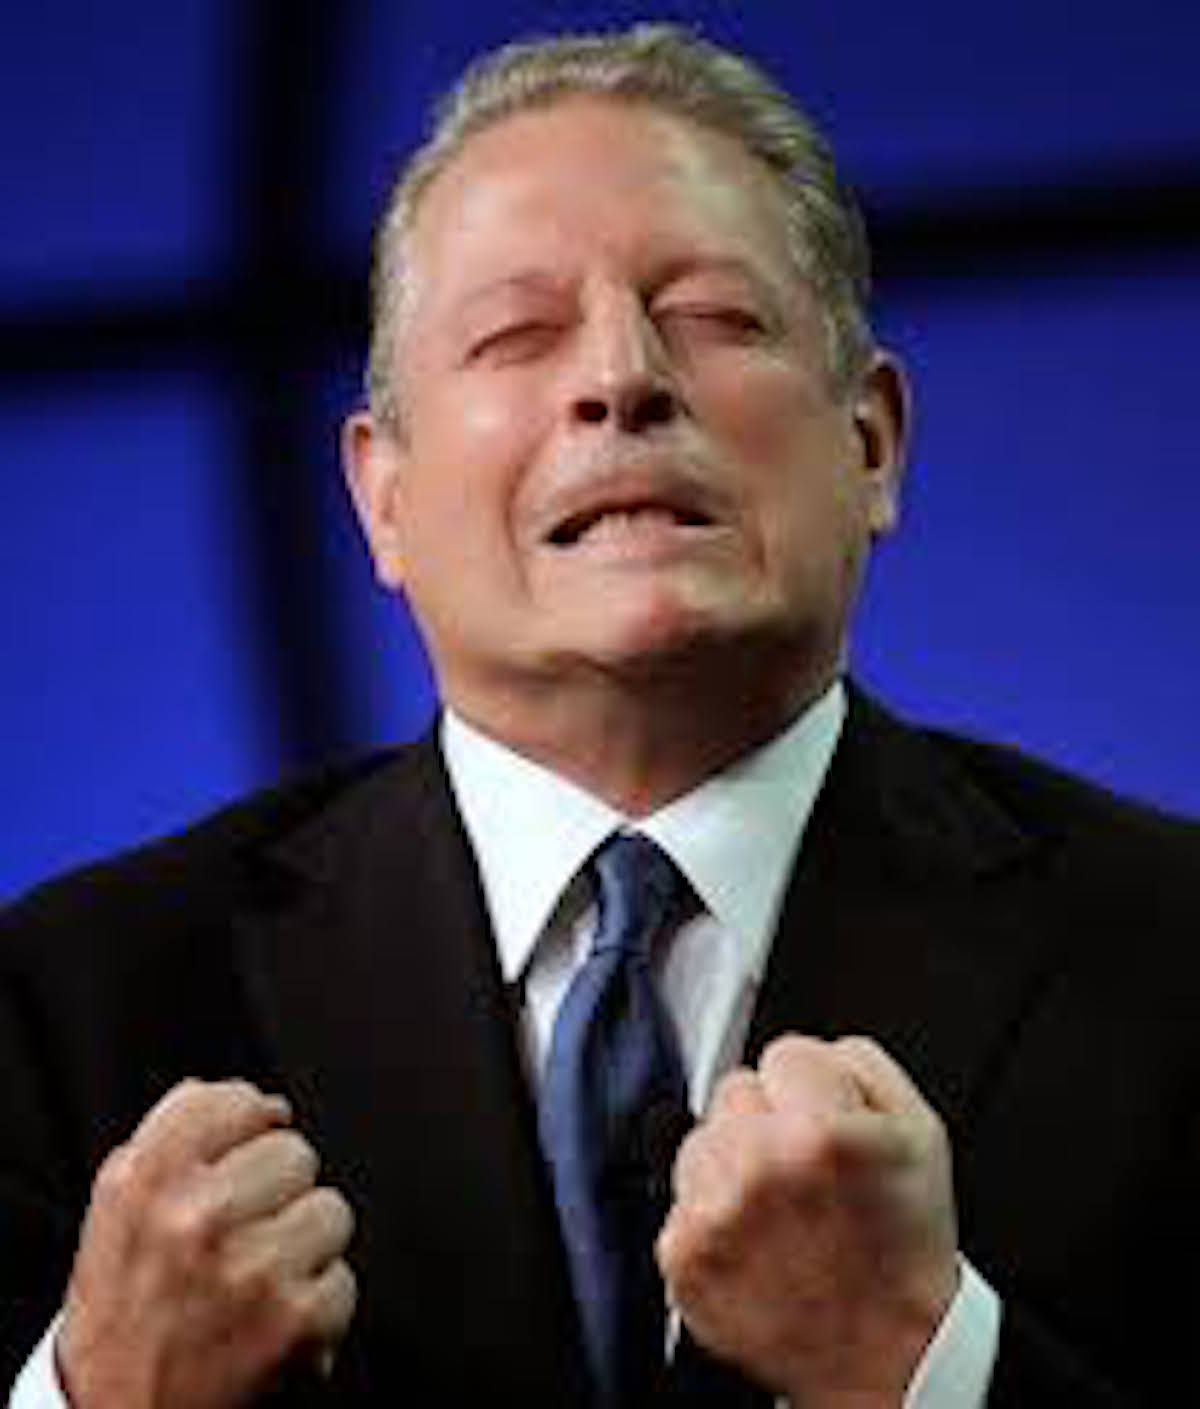 Why Won't Al Gore Endorse Hillary?